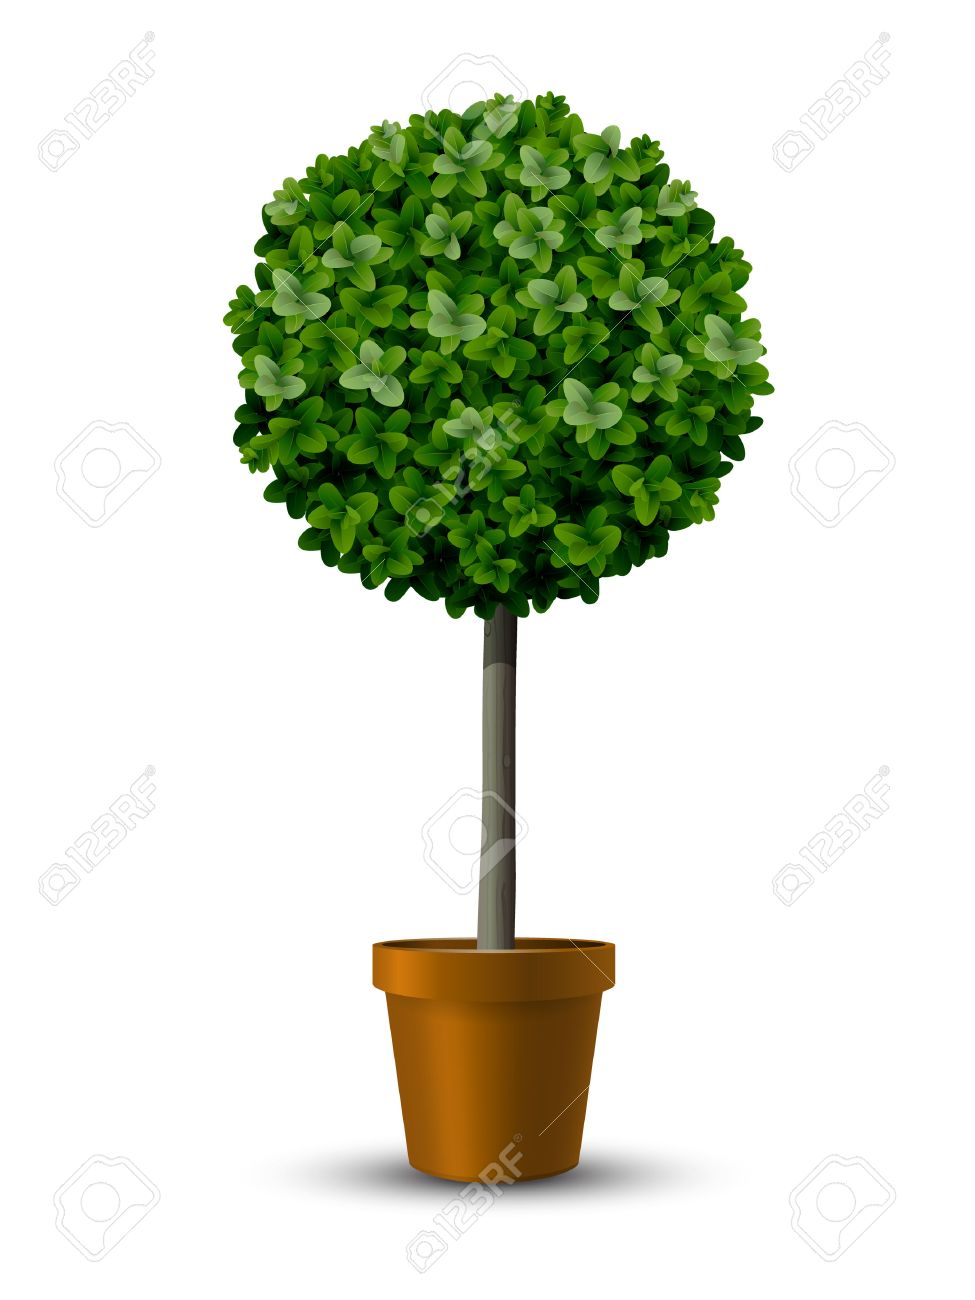 Decorative trimming boxwood tree in flowerpot. Stock Vector - 41624947